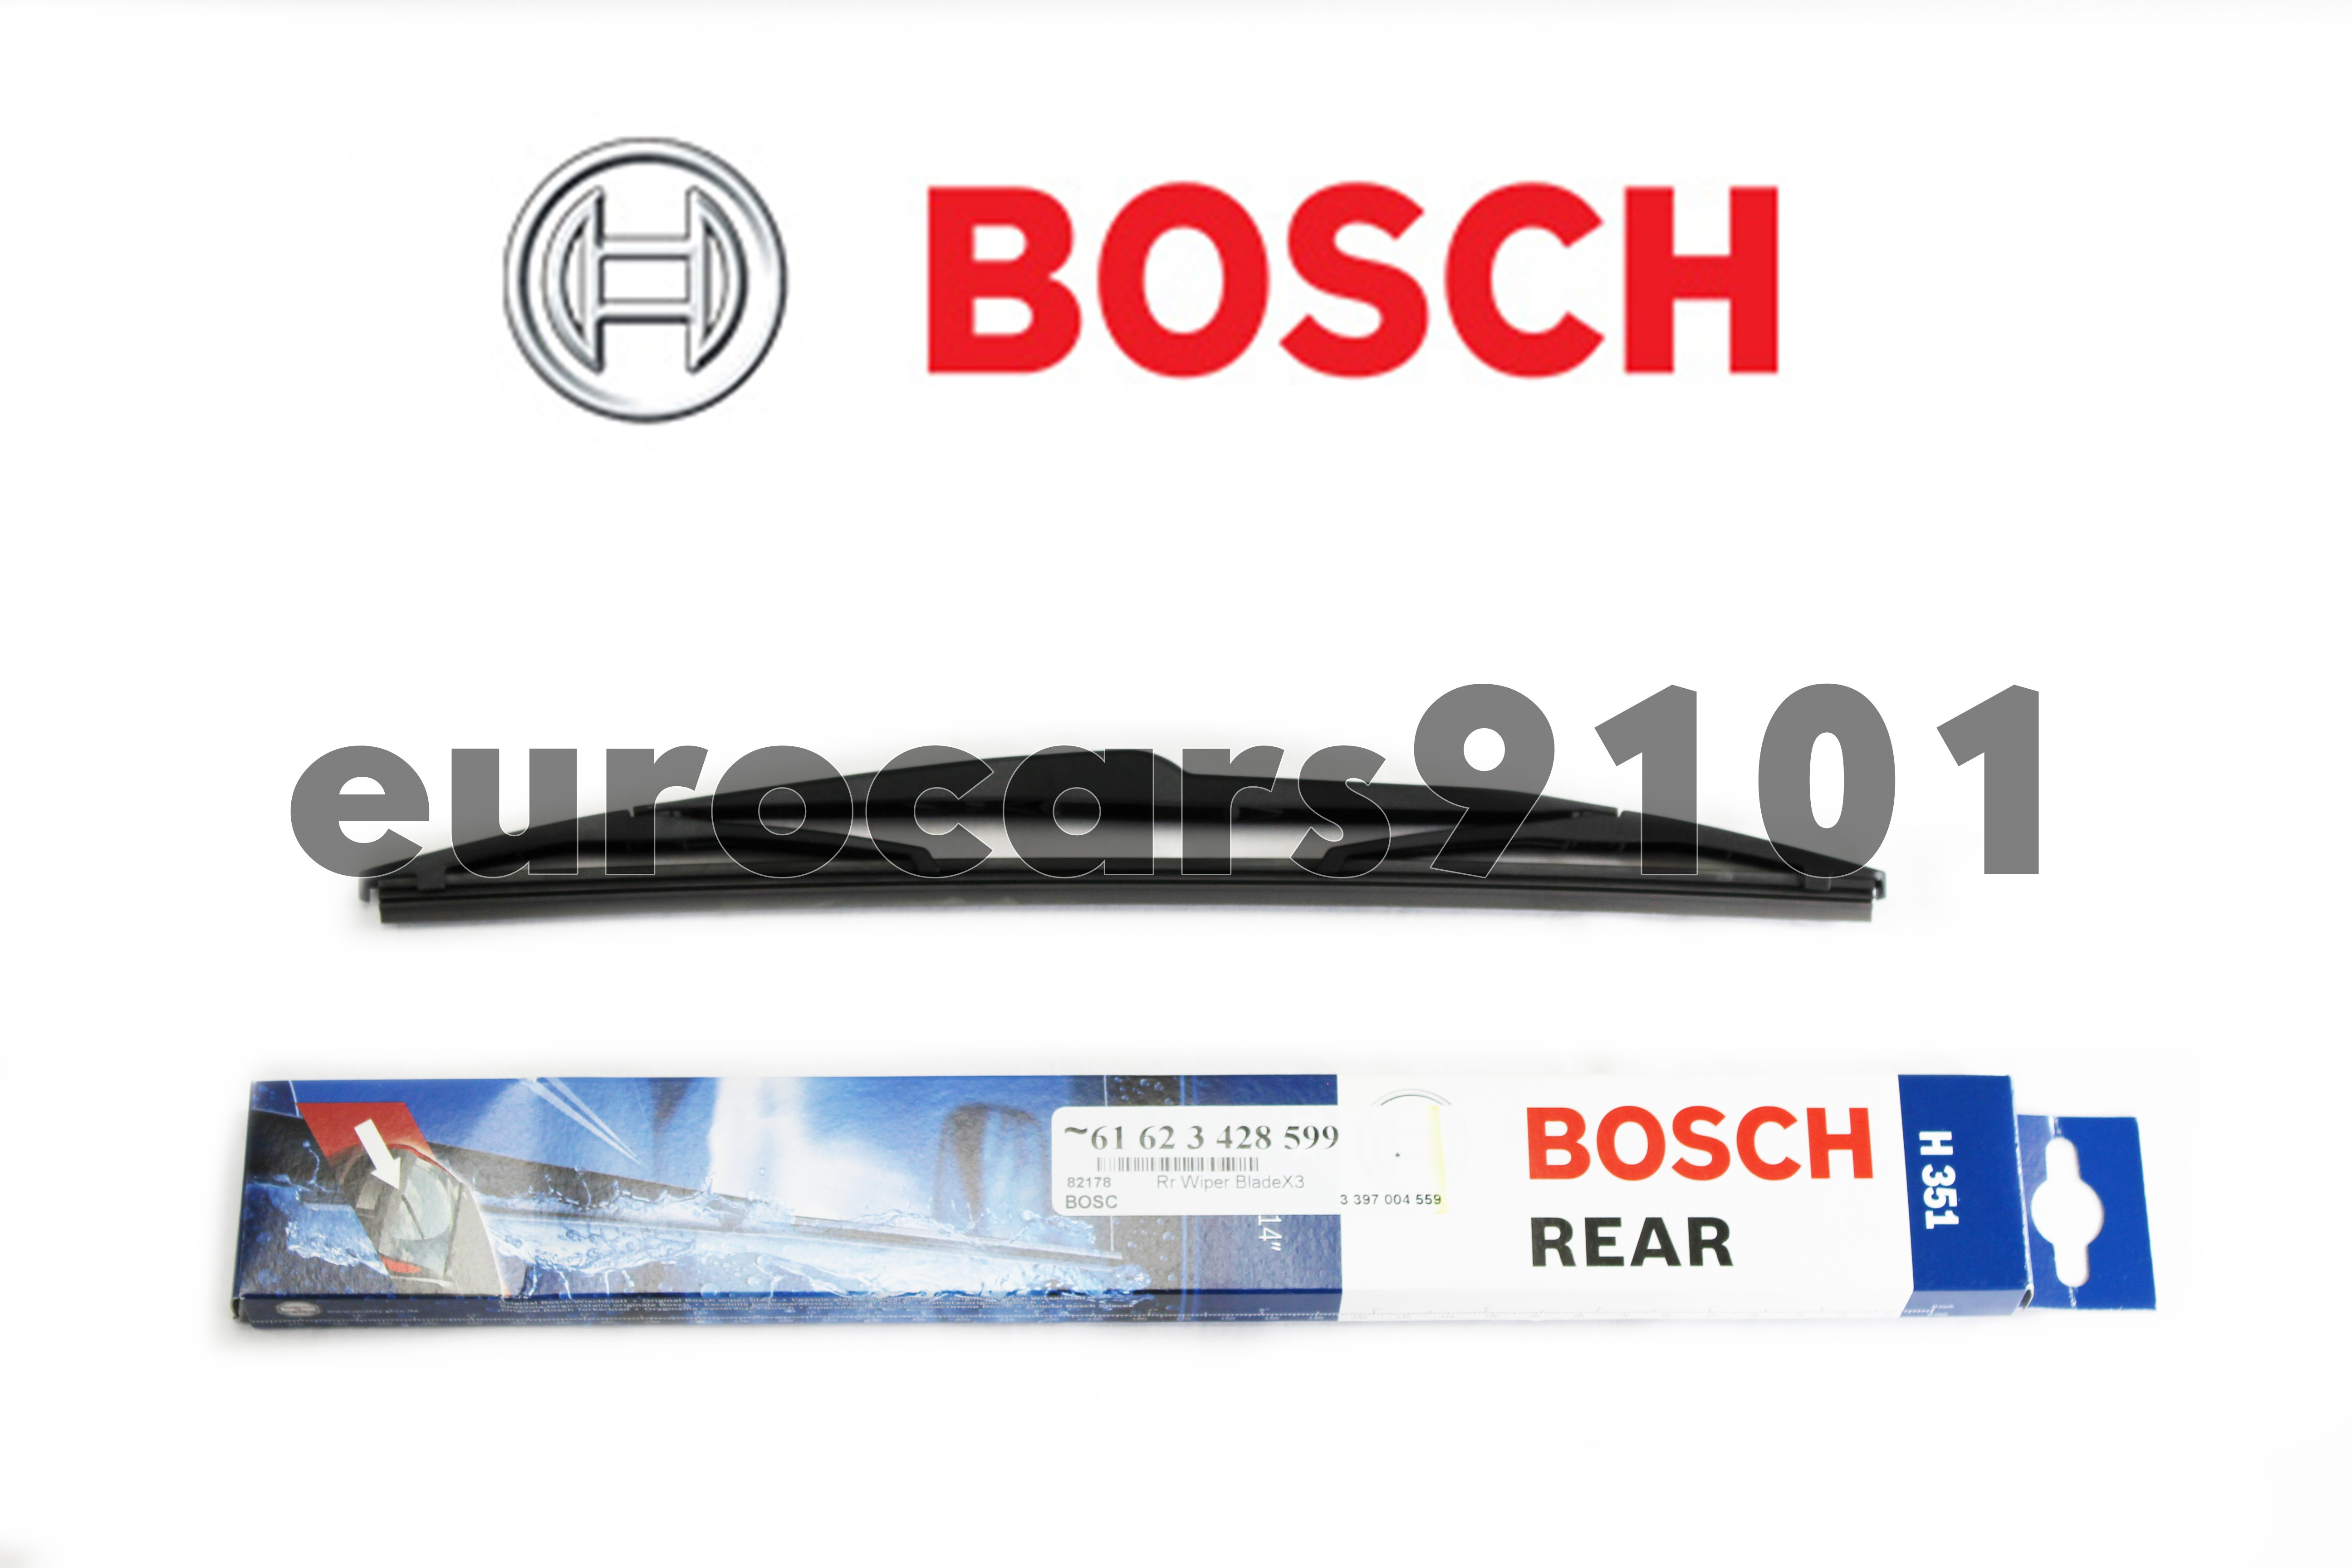 BMW Genuine Rear Windscreen Window Wiper Blade E83 X3 61623428599